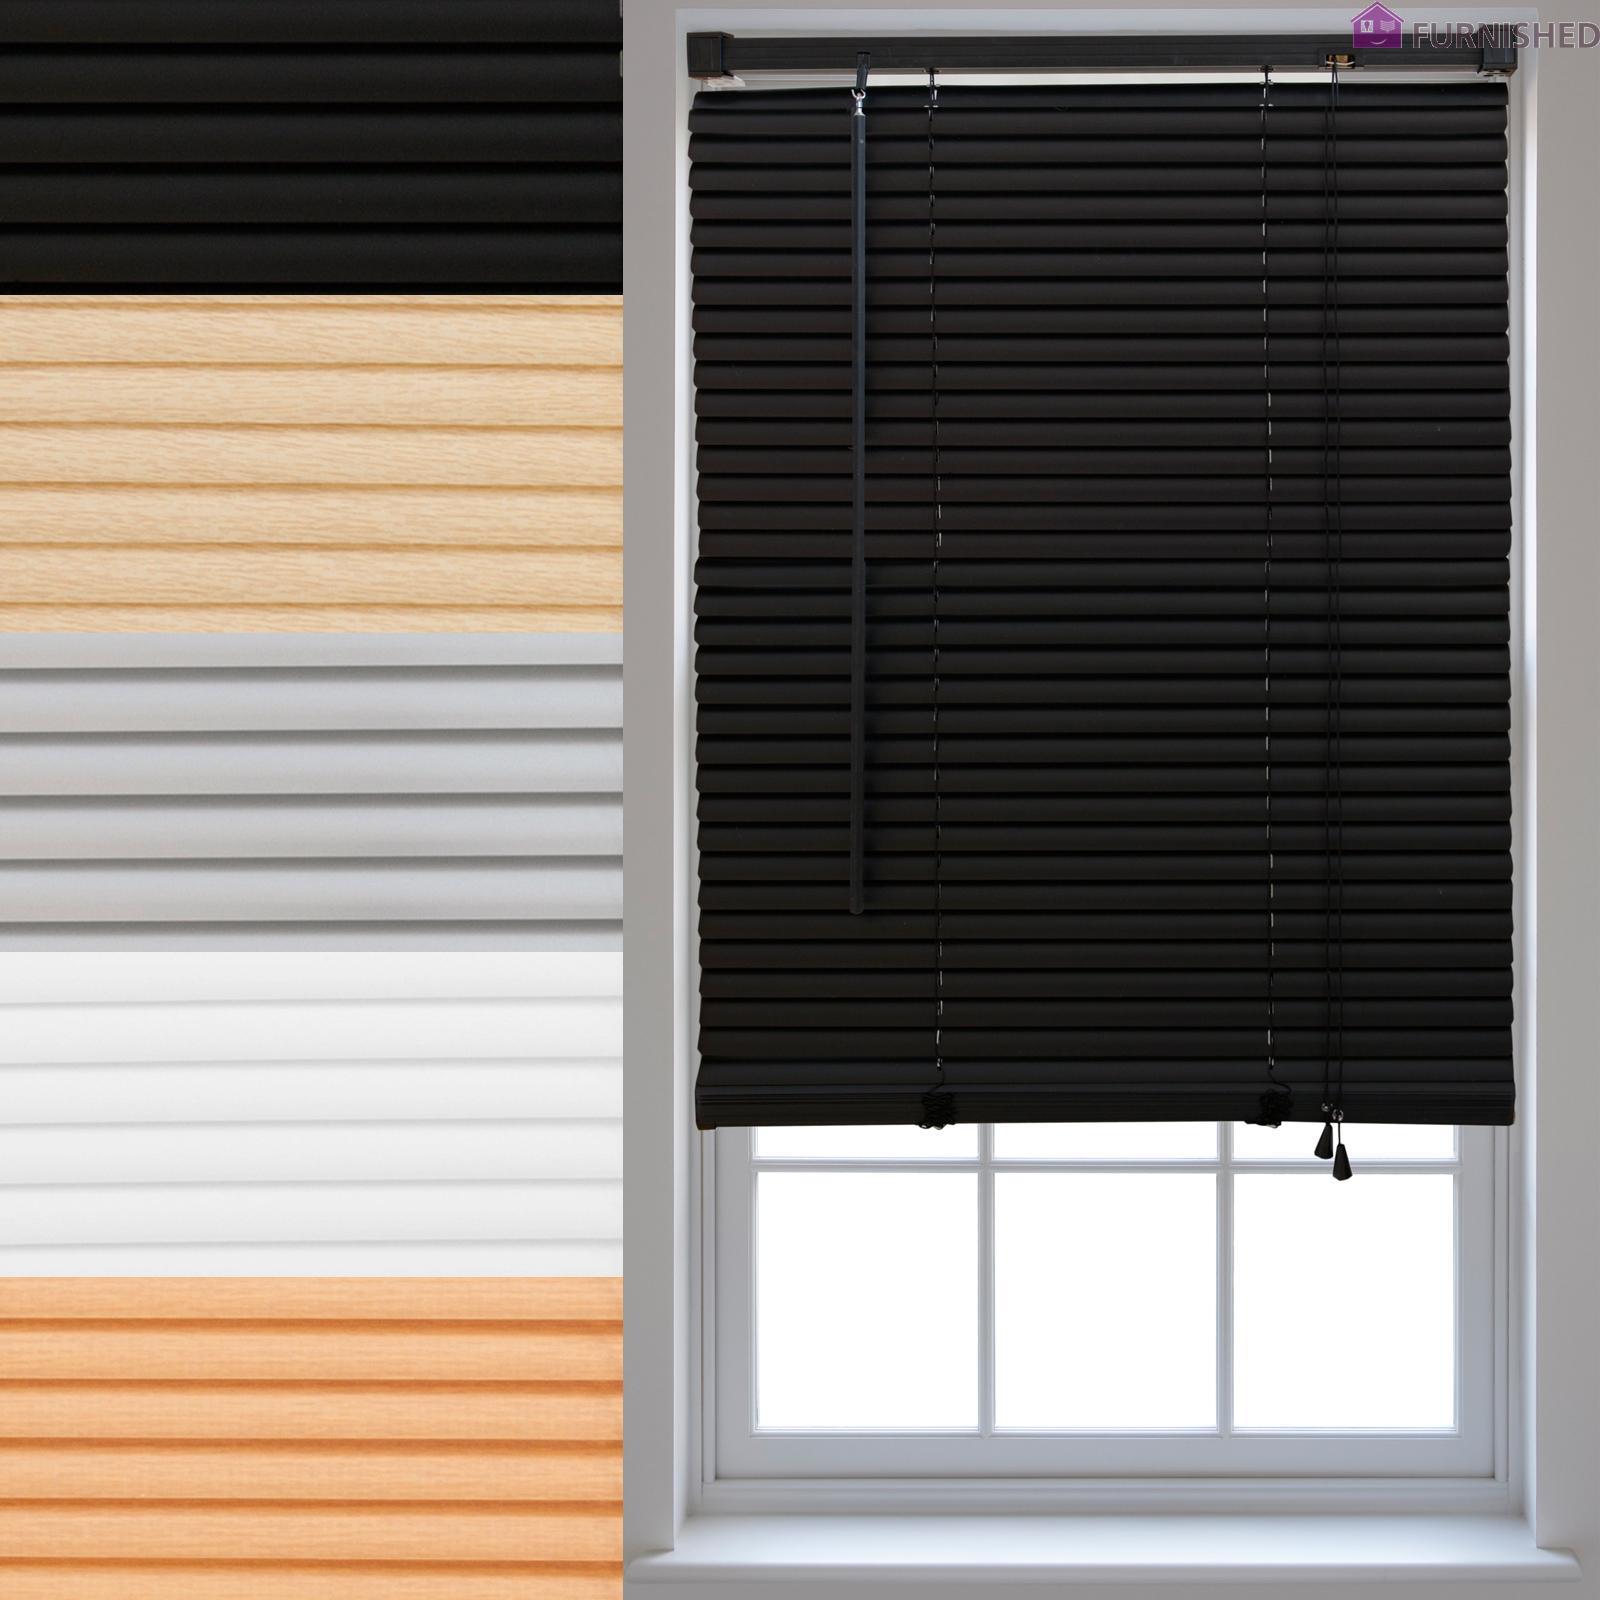 Http Www Ebay Co Uk Itm Pvc Venetian Window Blinds Free Cut To Size Home Office Blind New 291767951017